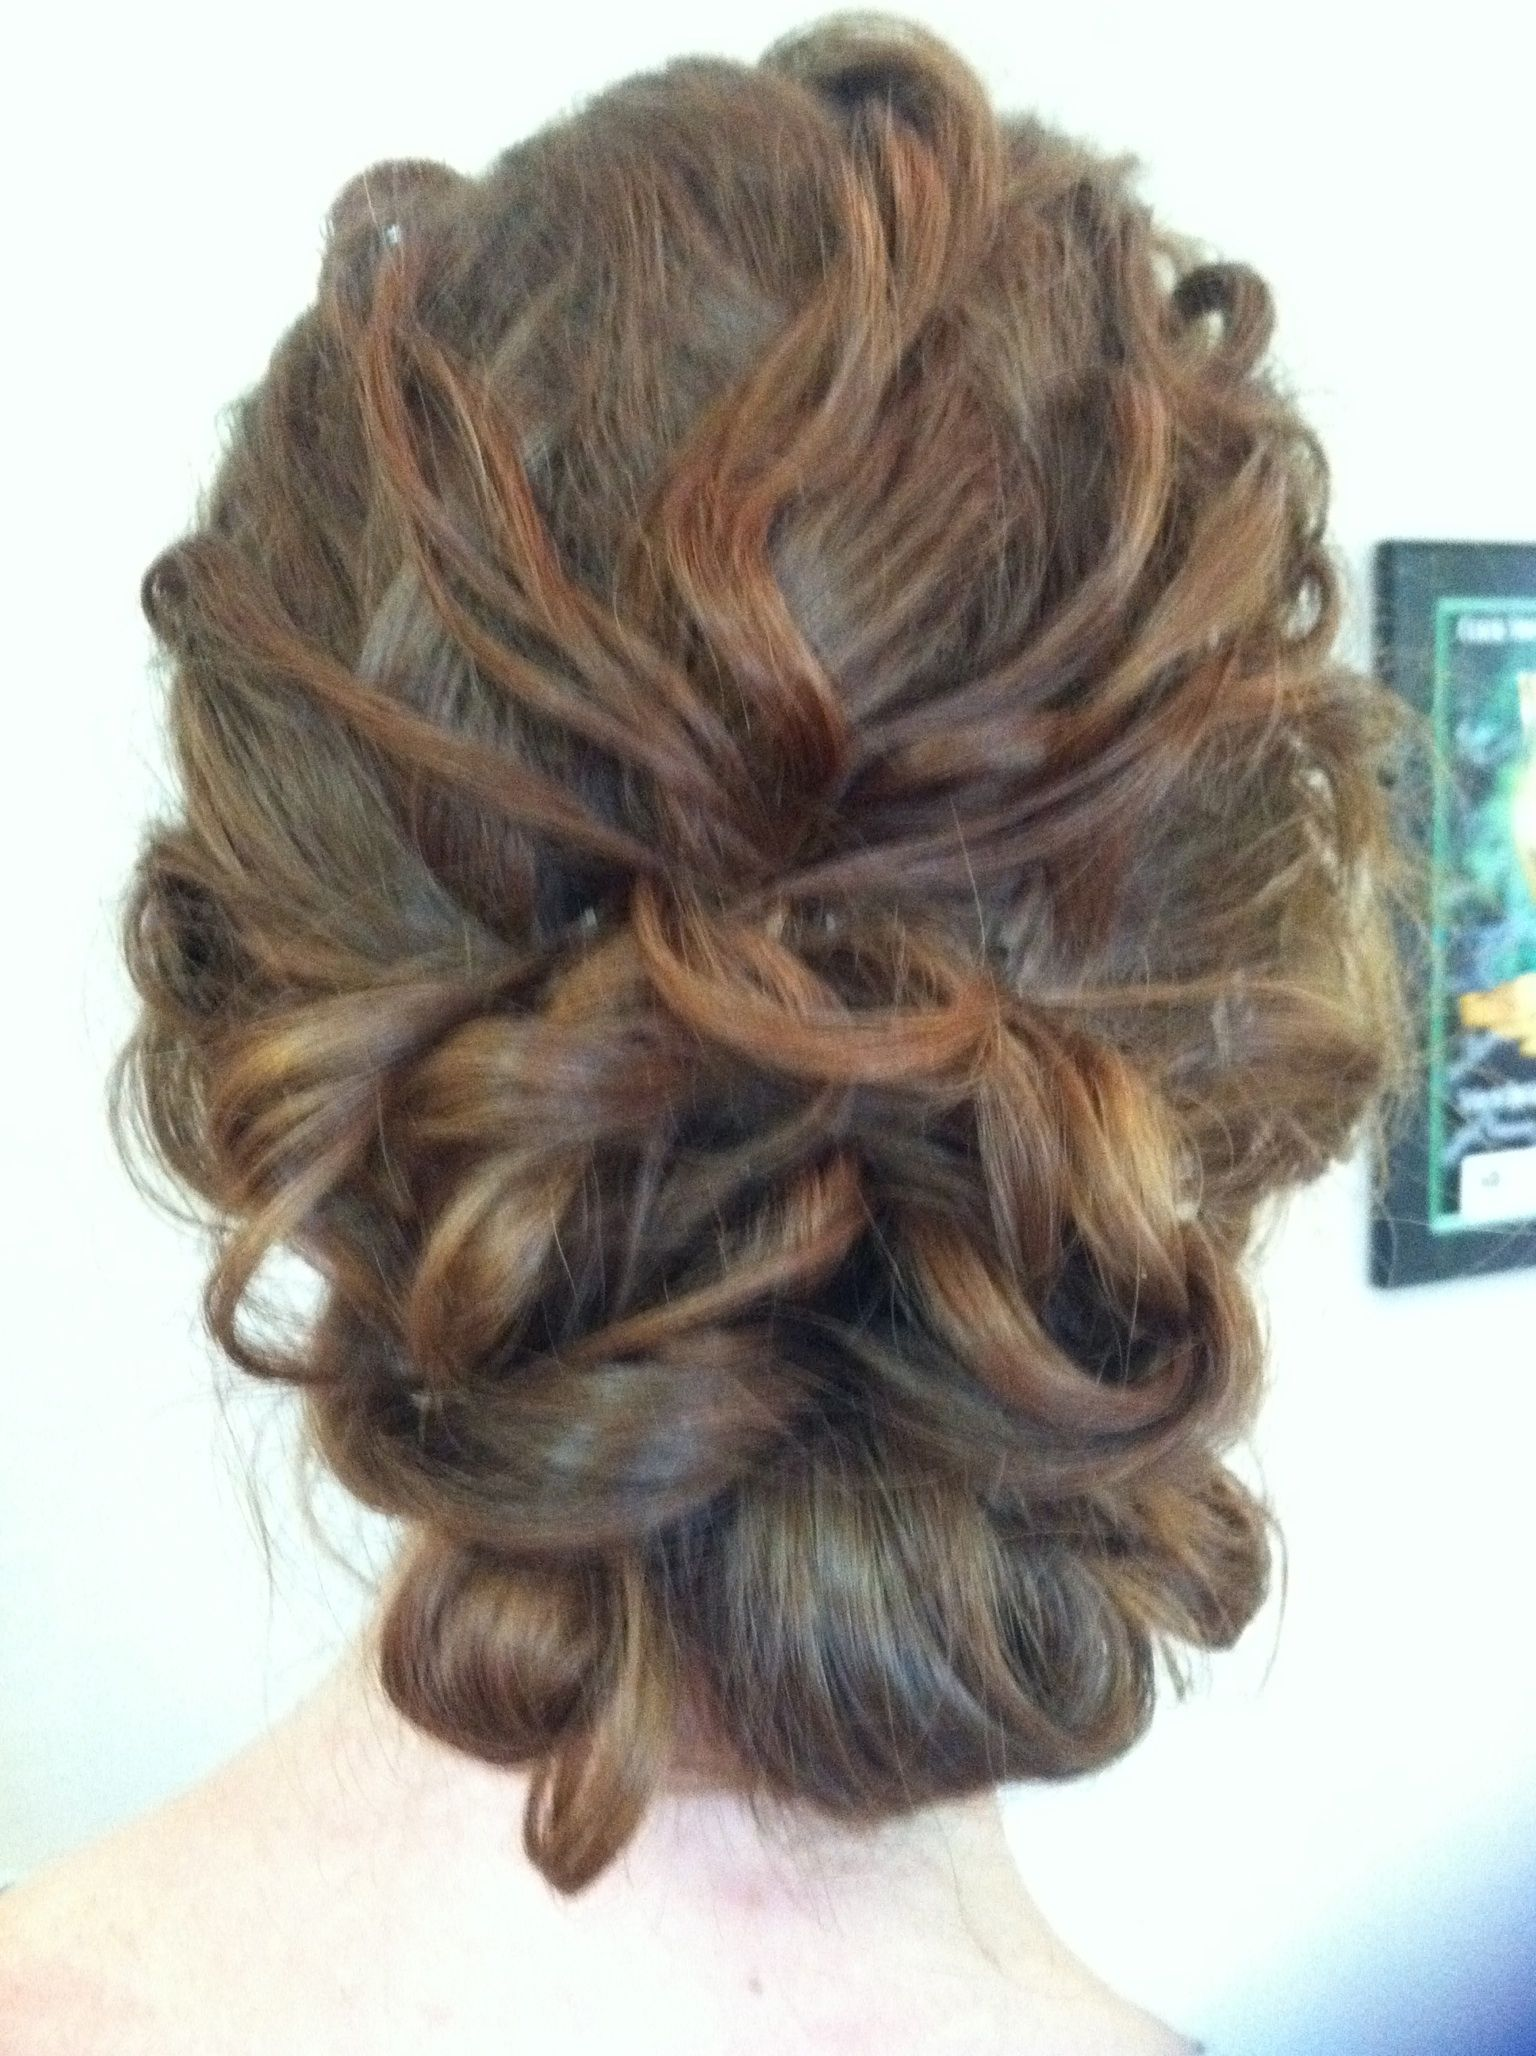 Curly hair updo bridal updo wedding hairstyles